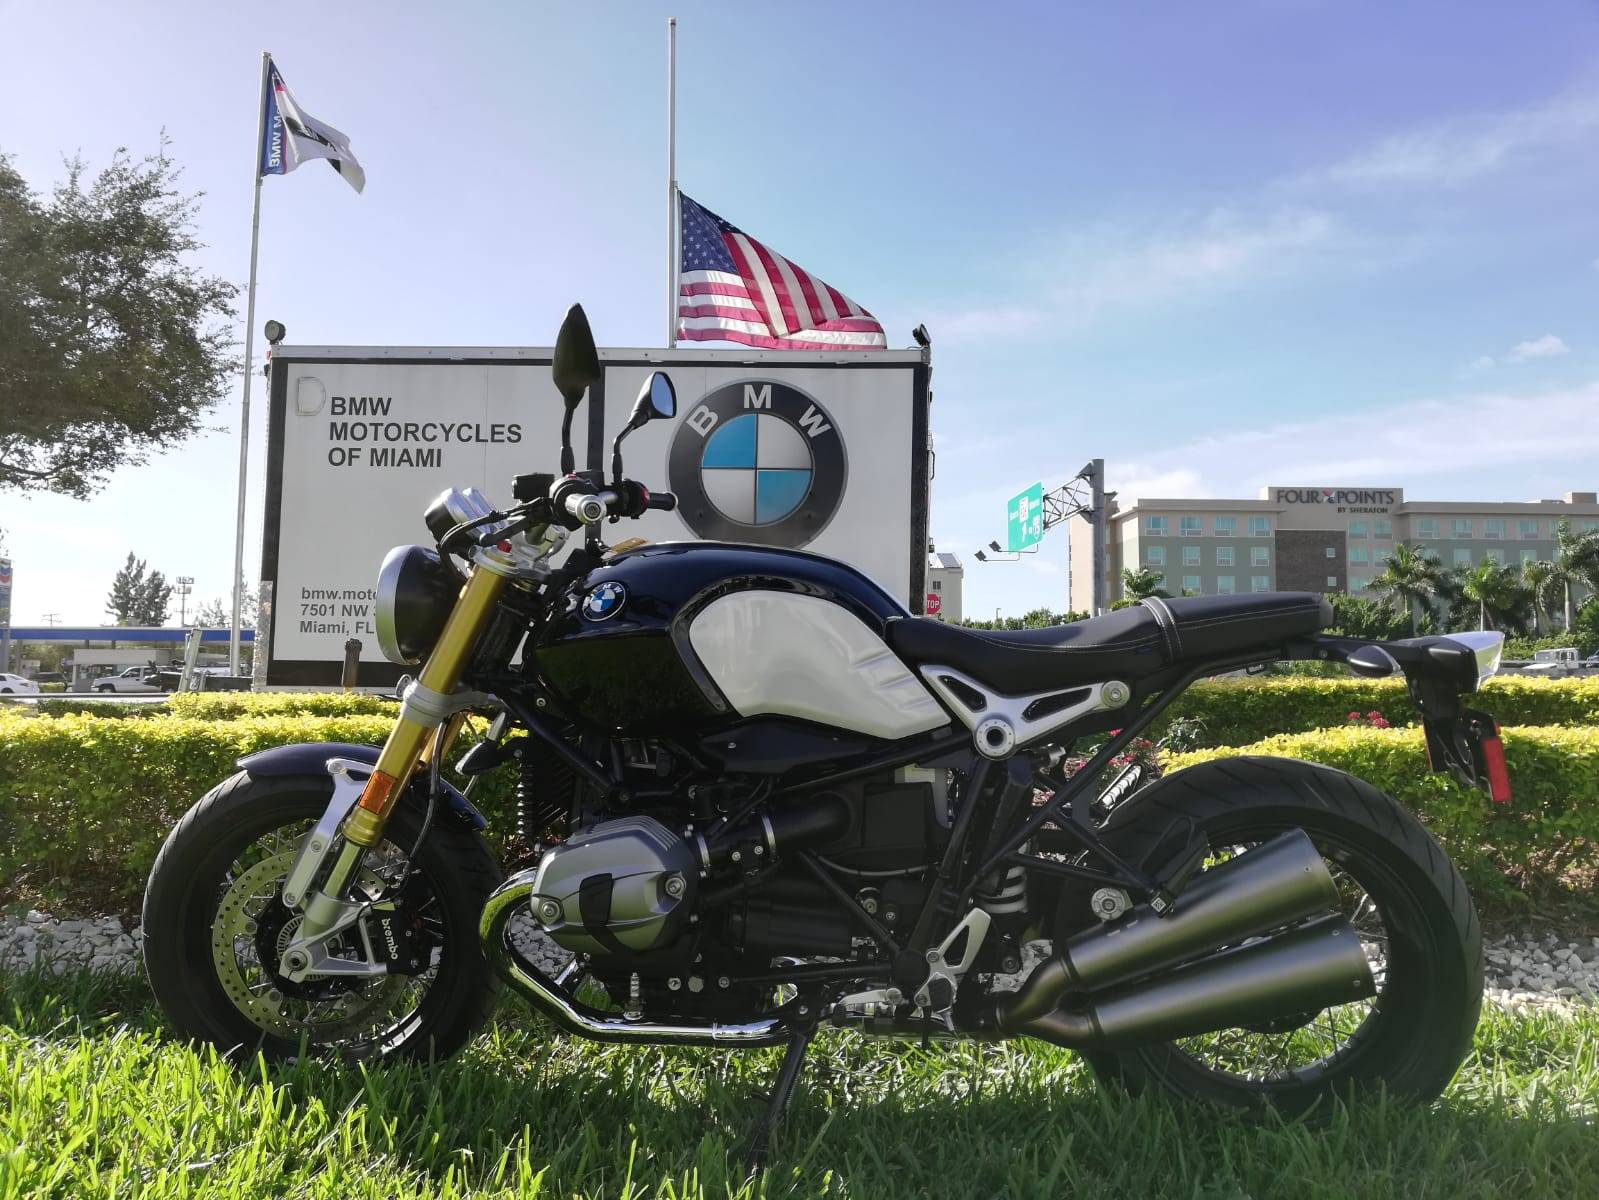 New 2019 BMW R NineT for sale, BMW for sale, BMW Motorcycle Café Racer, new BMW Caffe, Cafe Racer, BMW - Photo 5